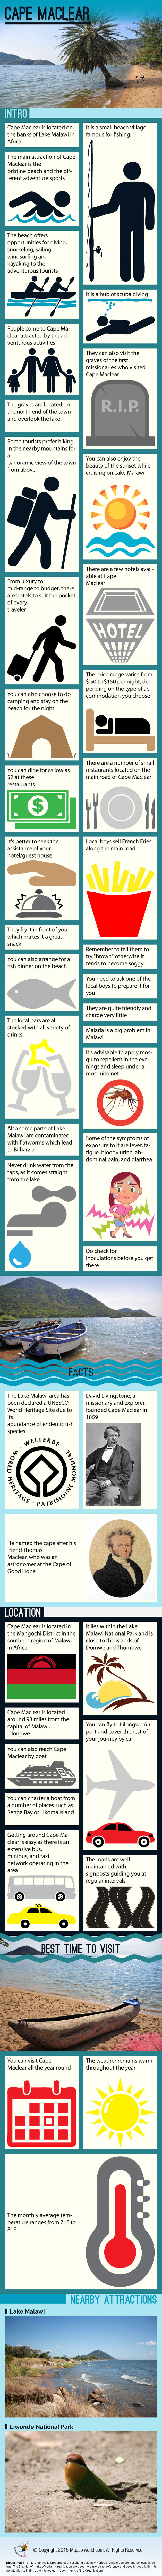 Cape Maclear Infographic